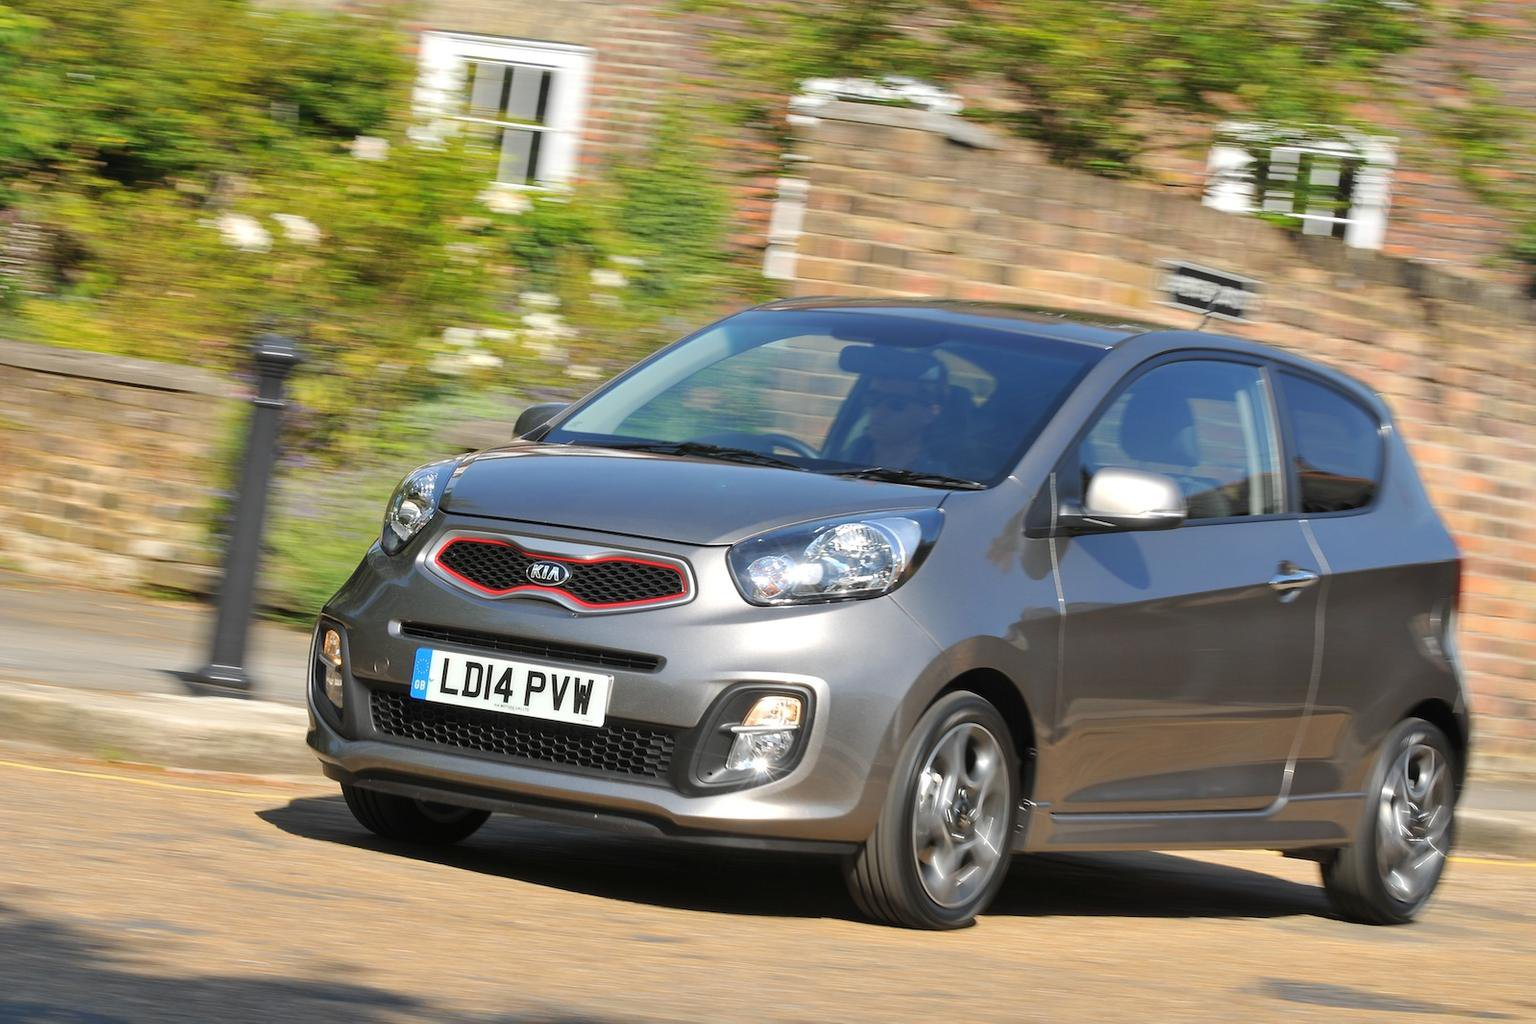 2014 Kia Picanto Quantum review